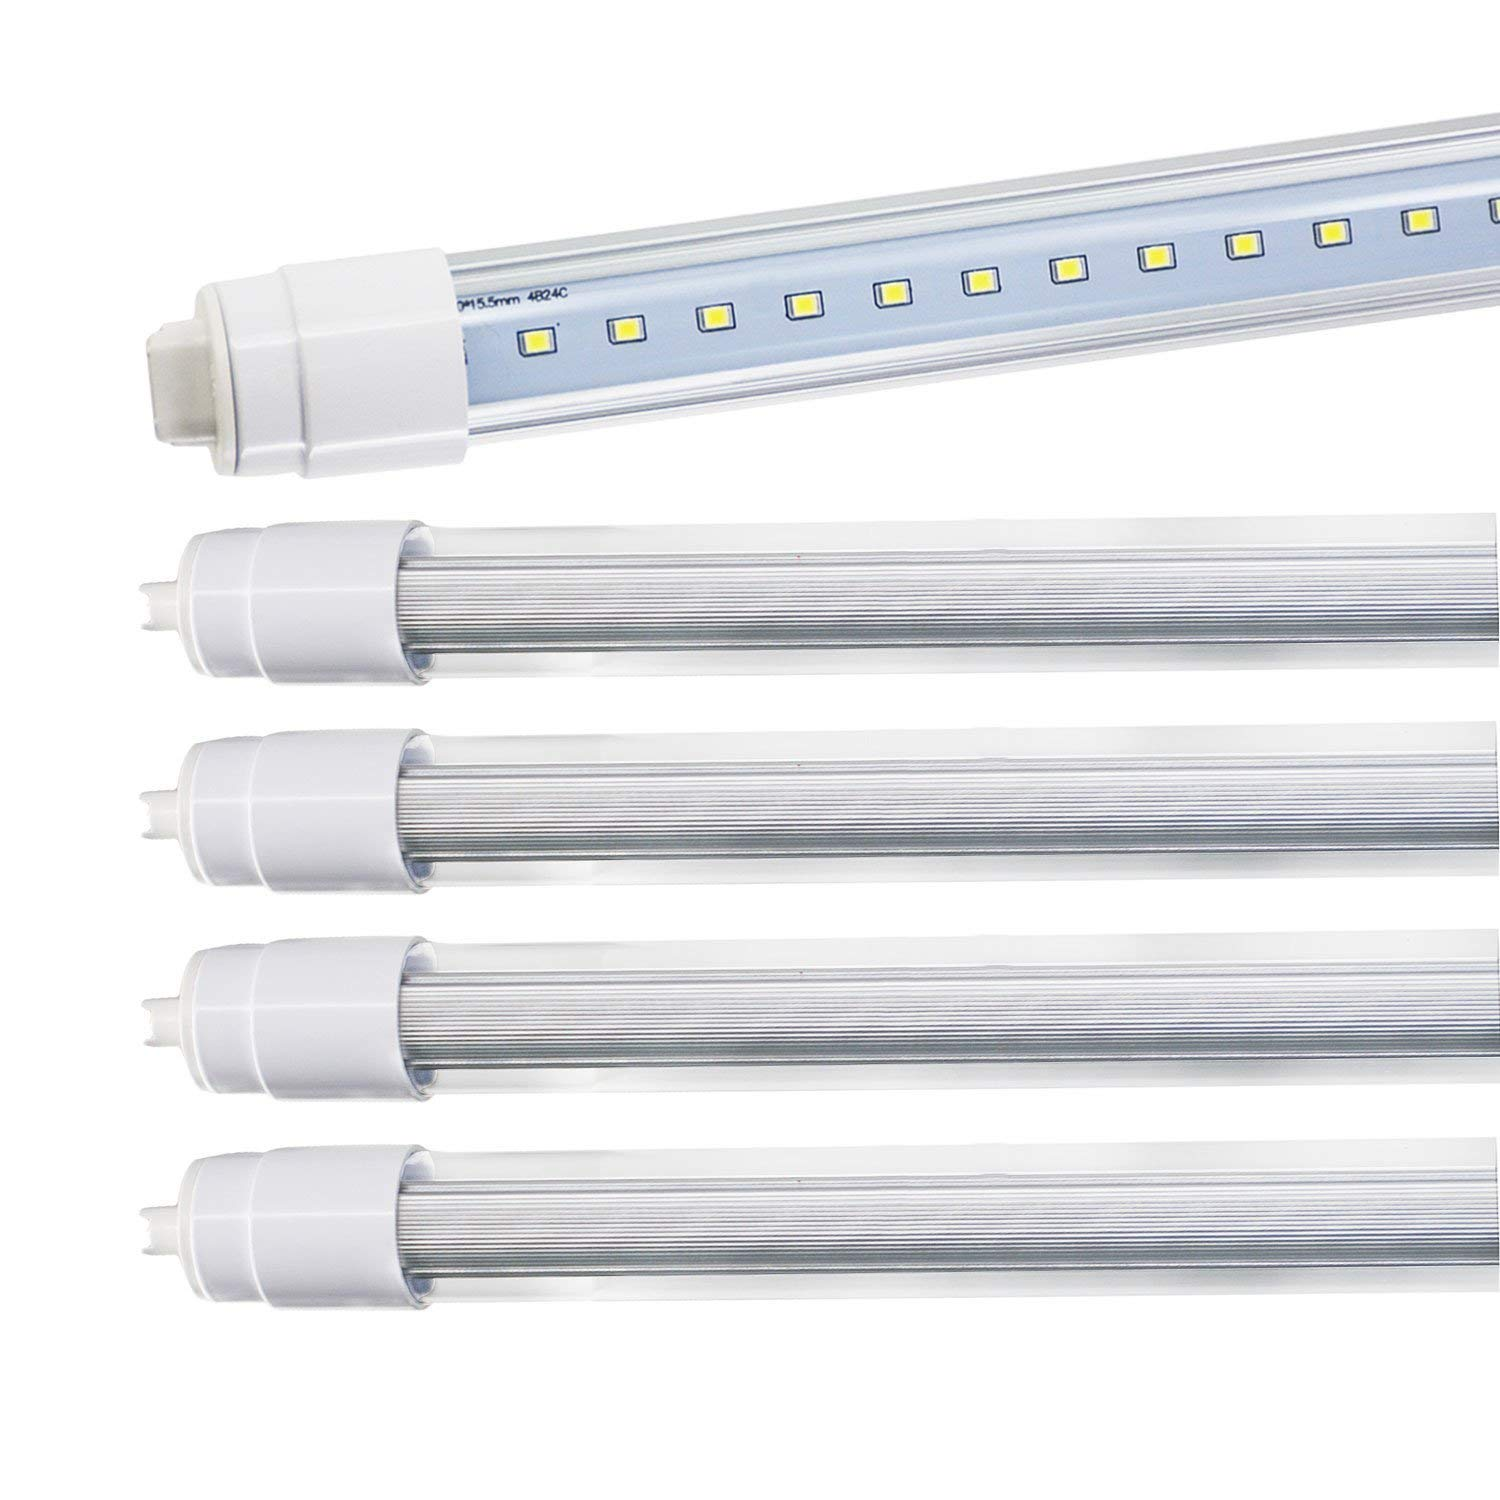 JESLED 360 Degree T8 T10 T12 8ft 52w R17D//HO Base led Outdoor Tubes for Double Sided Signs 6000K Cool White Clear Cover 4-Pack